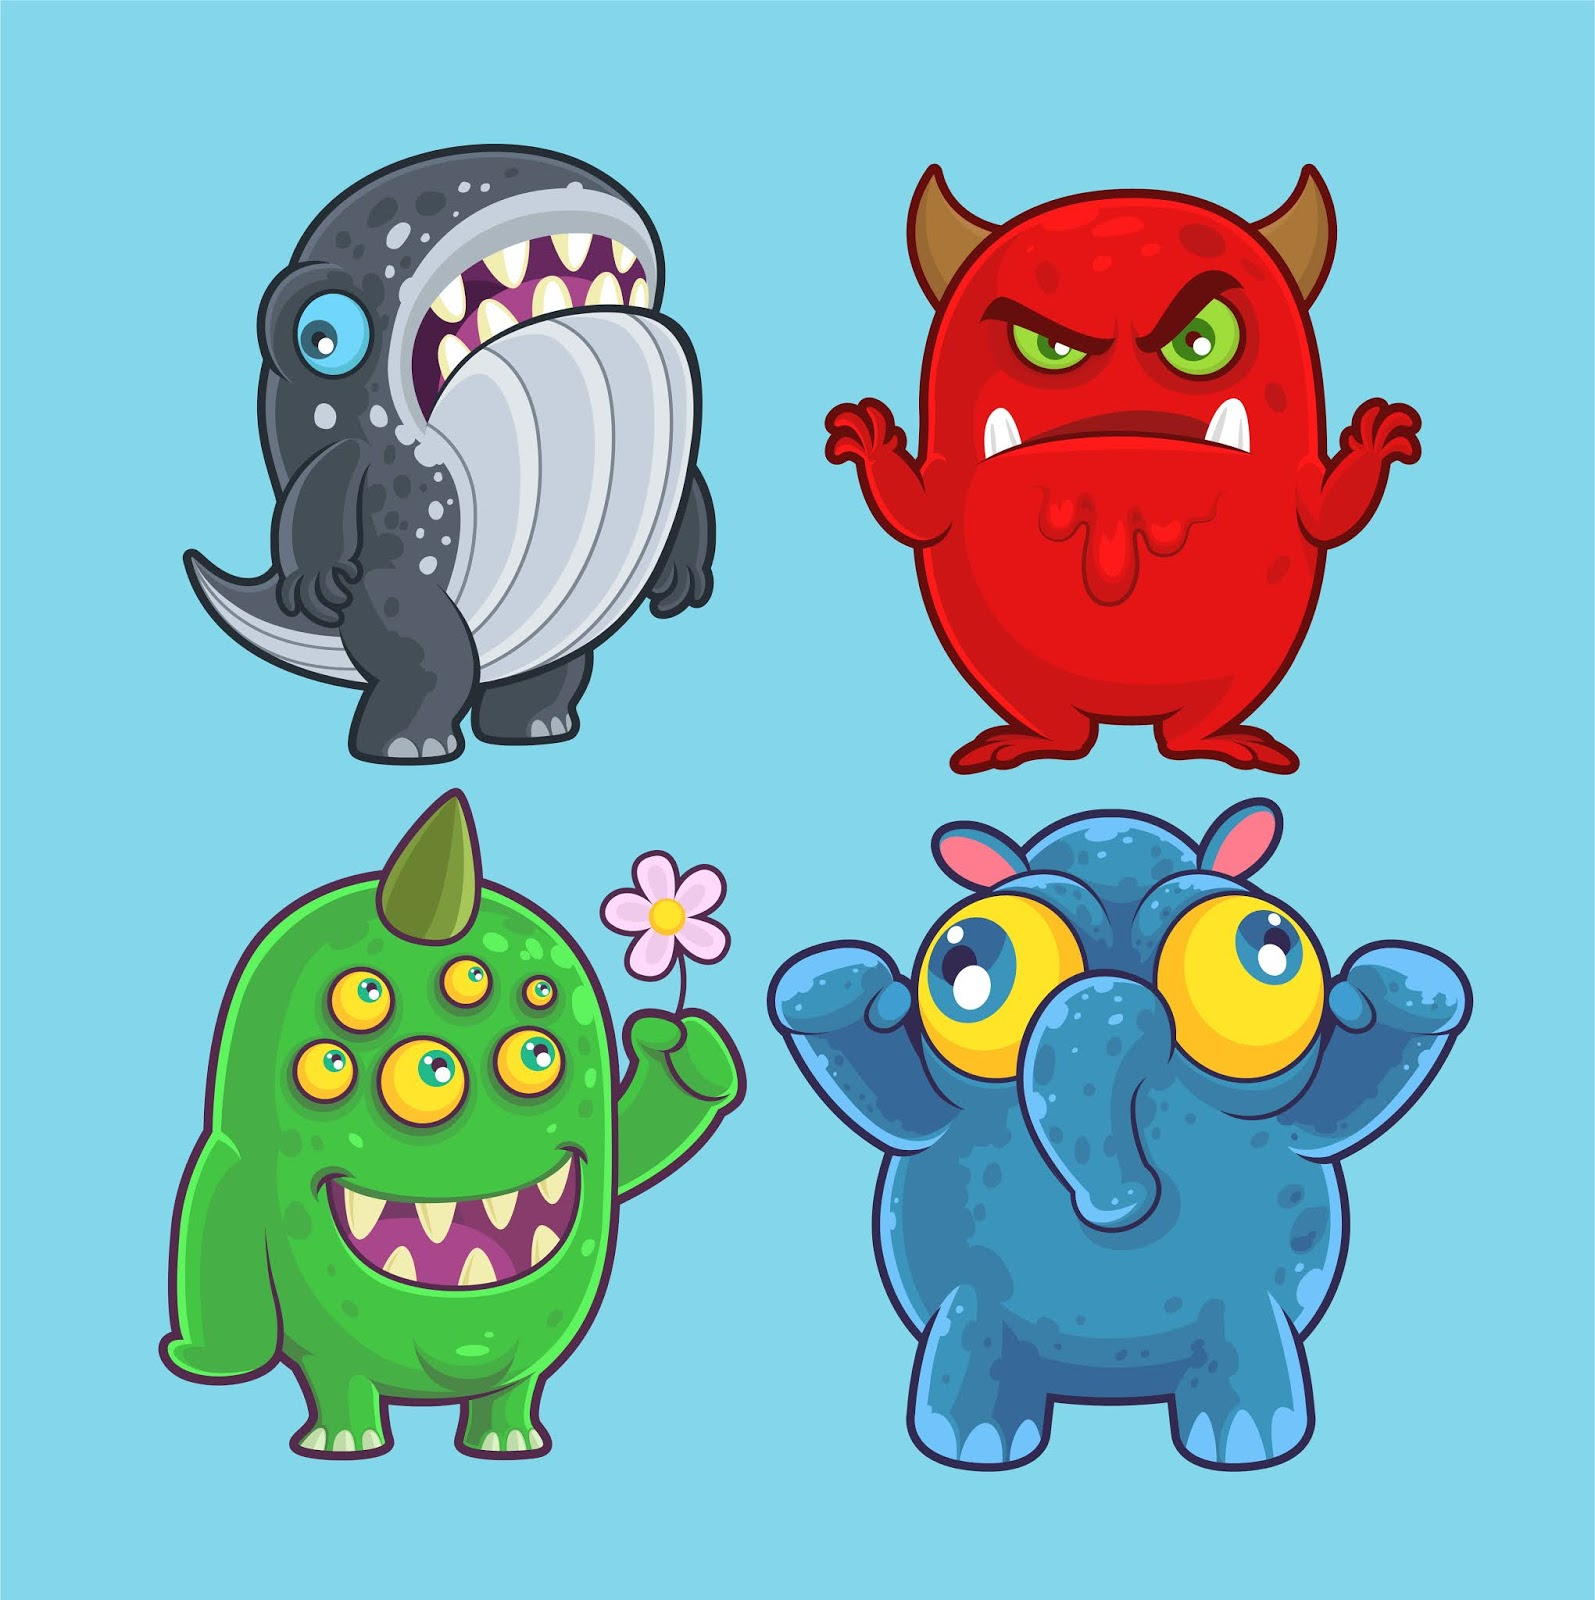 Cute Monsters Set Illustration Design Free Download Vector CDR, AI, EPS and PNG Formats